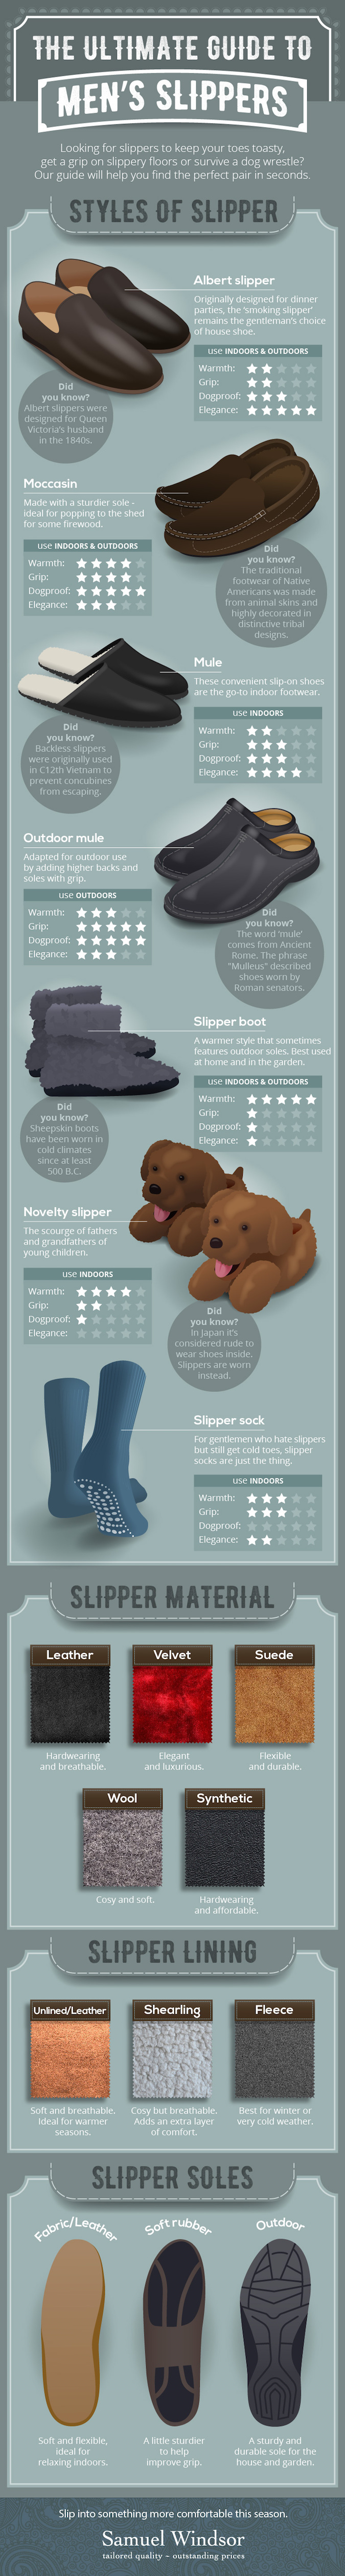 The Ultimate Guide to Men's Slippers